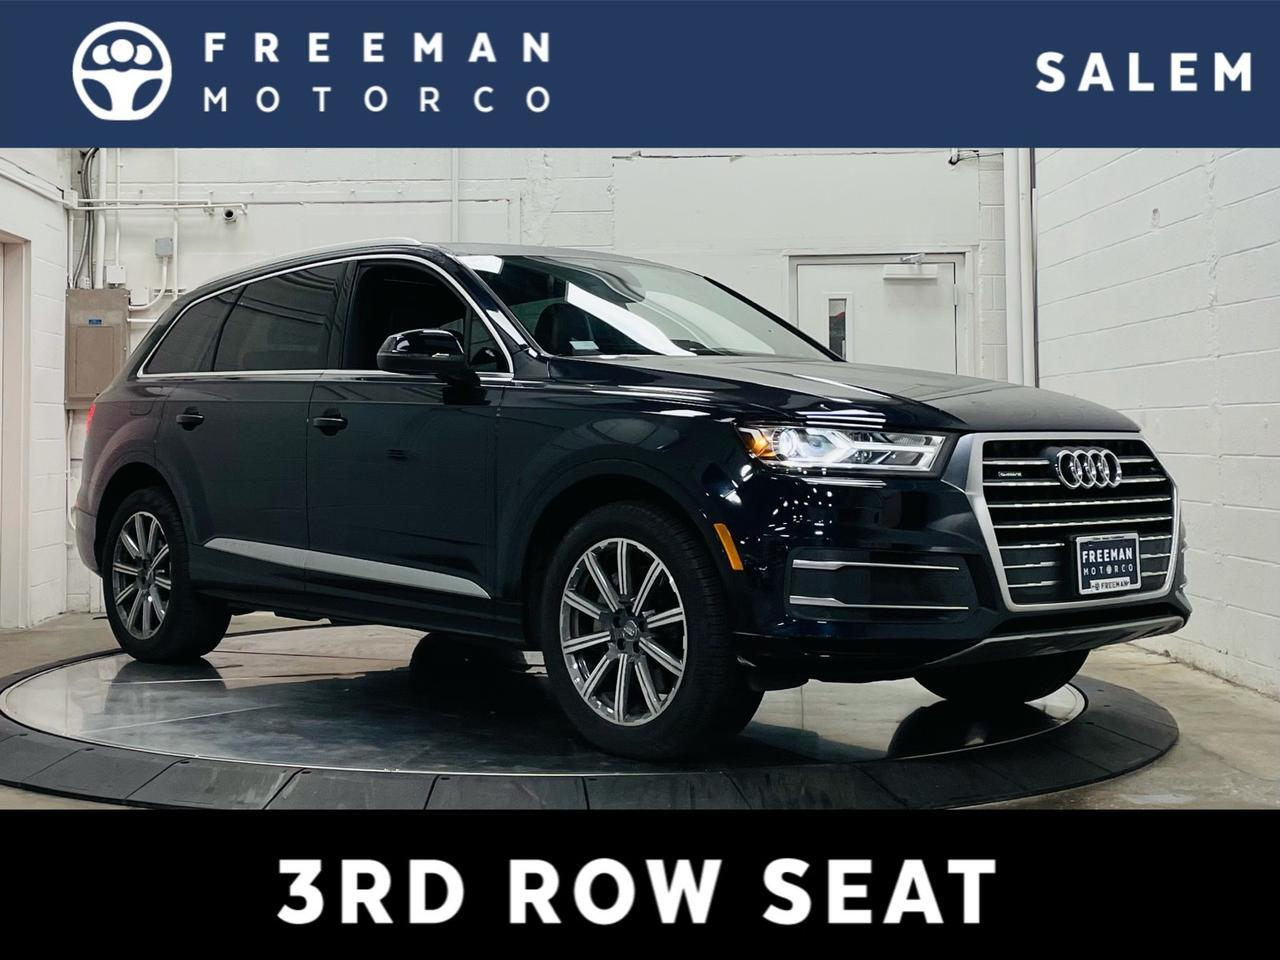 2018 Audi Q7 Premium Plus BOSE Sound Audi Side Assist Salem OR